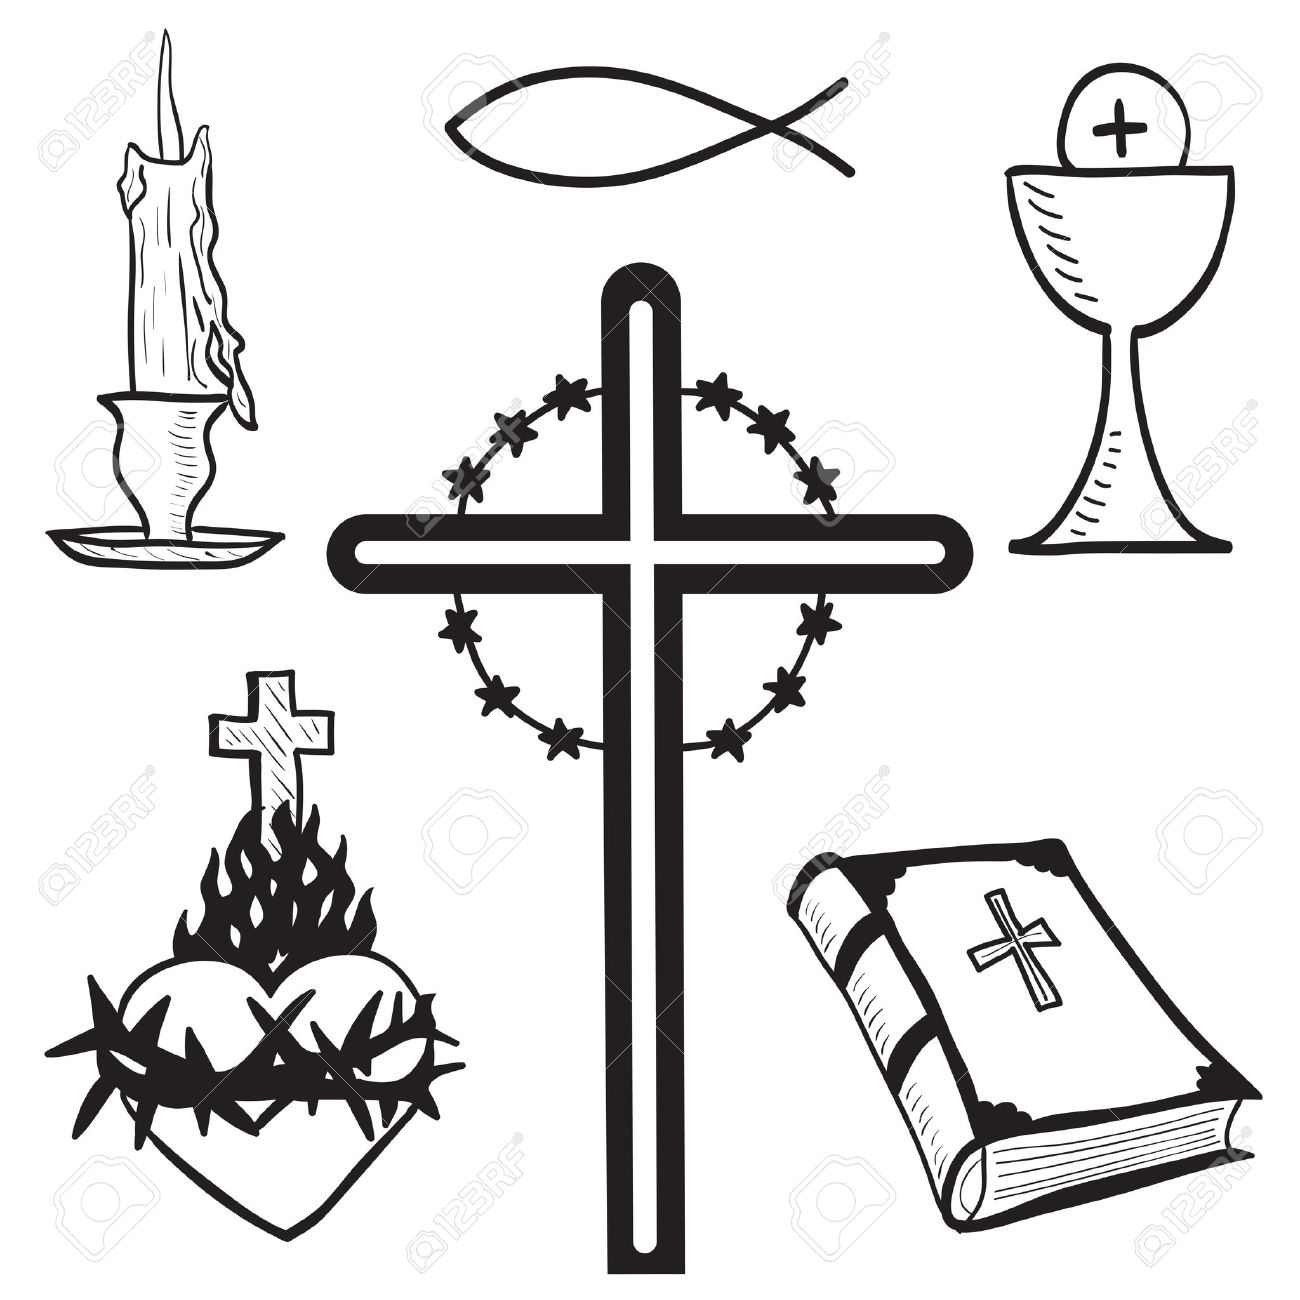 christian hand drawn symbols illustration candle cross bible rh 123rf com christian symbols free clipart Christian Graphics and Clip Art